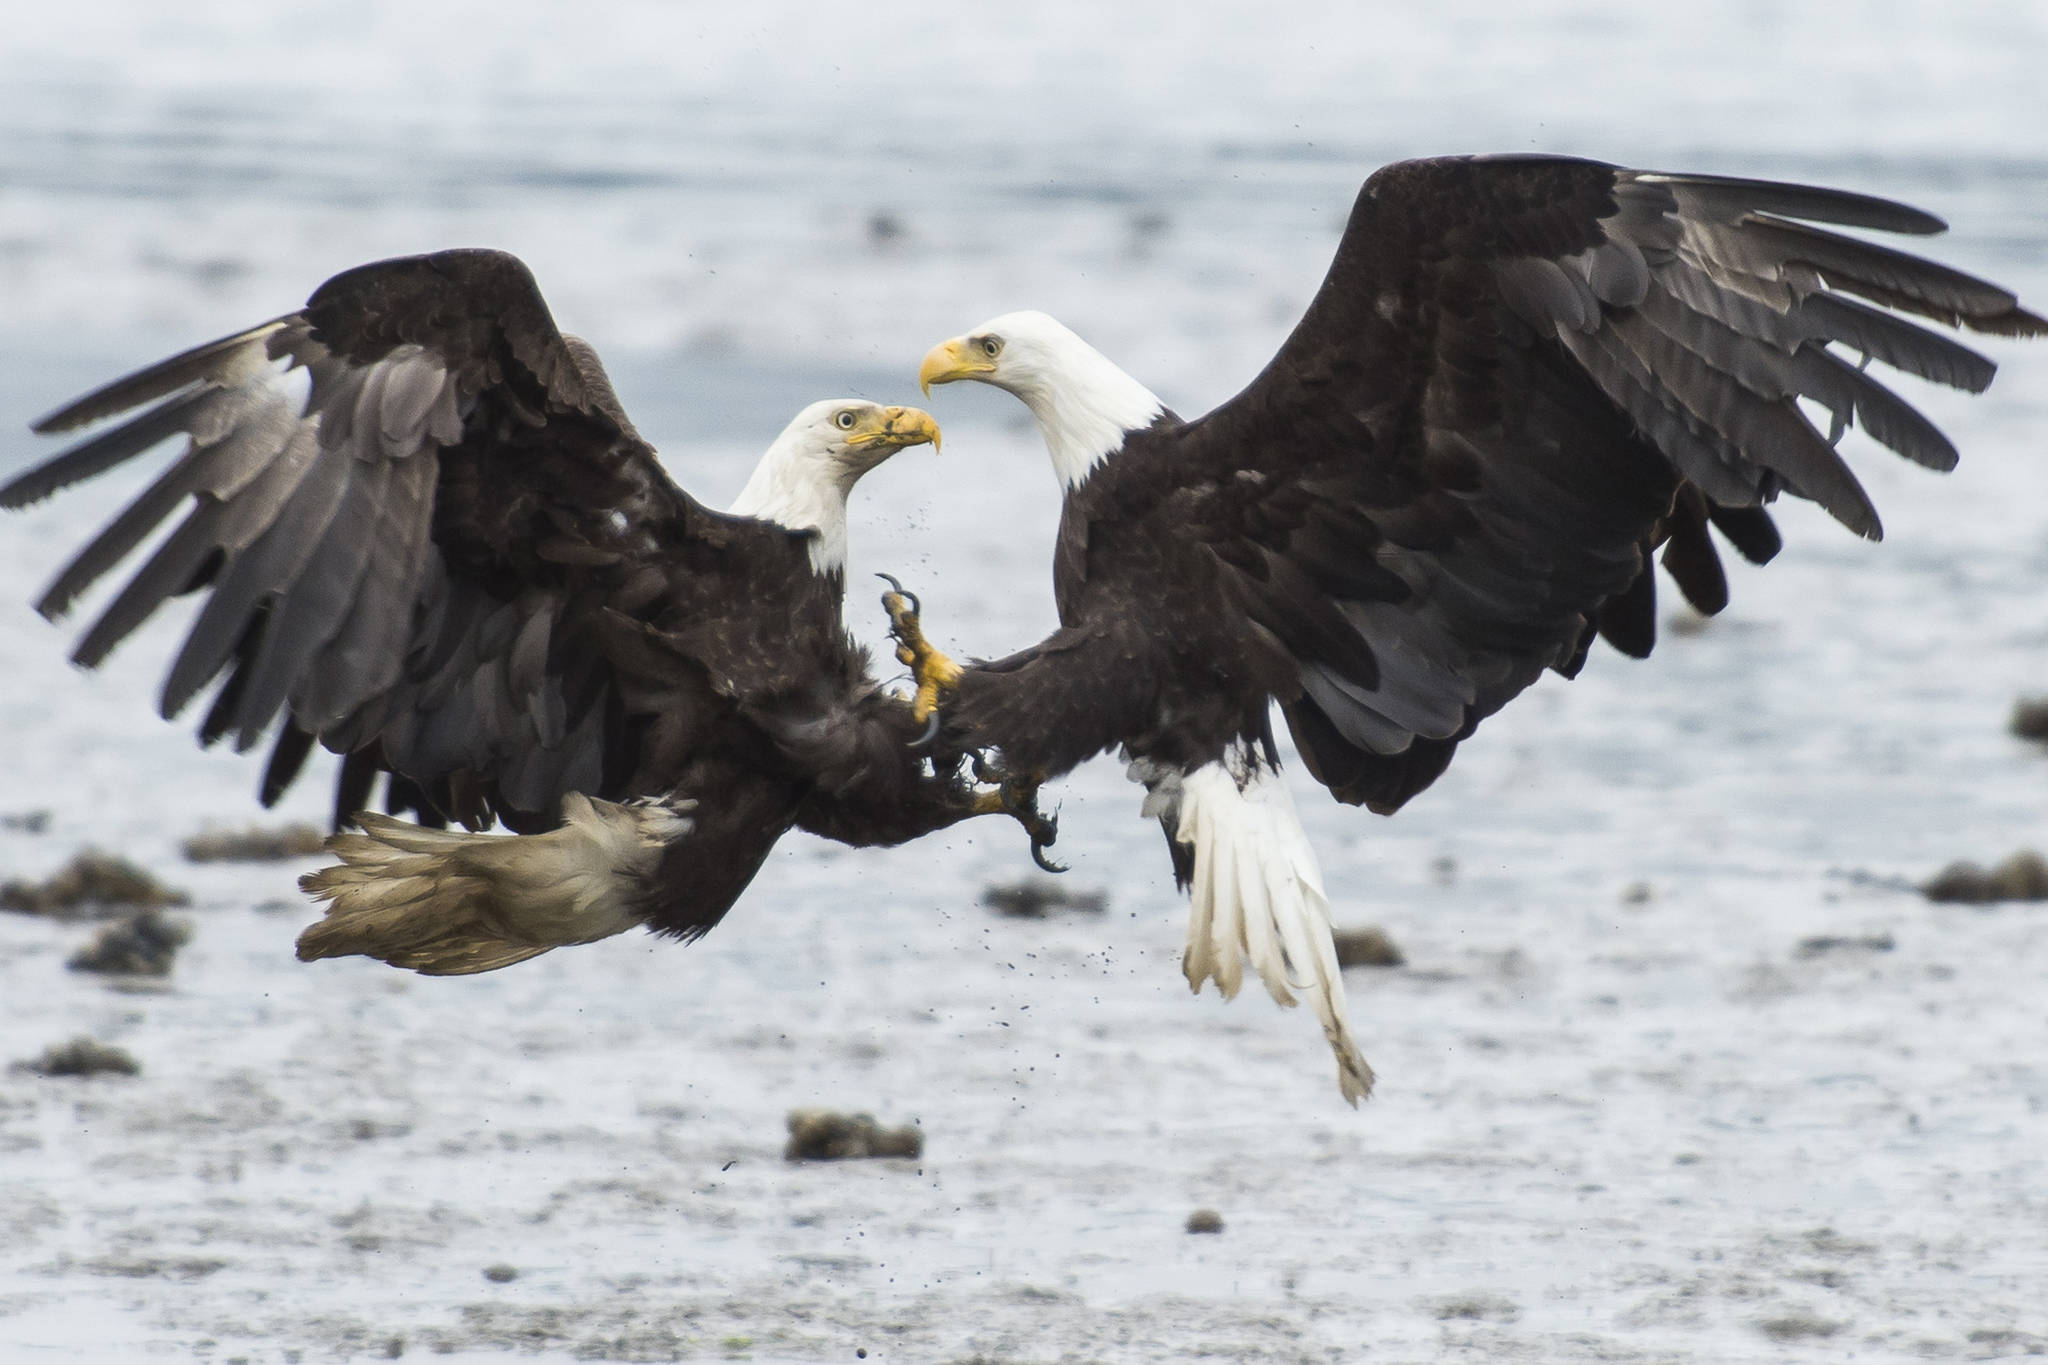 Bald eagles fight over salmon on the outgoing tide near the Macaulay Salmon Hatchery on Tuesday, July 17, 2018. (Michael Penn | Juneau Empire File)